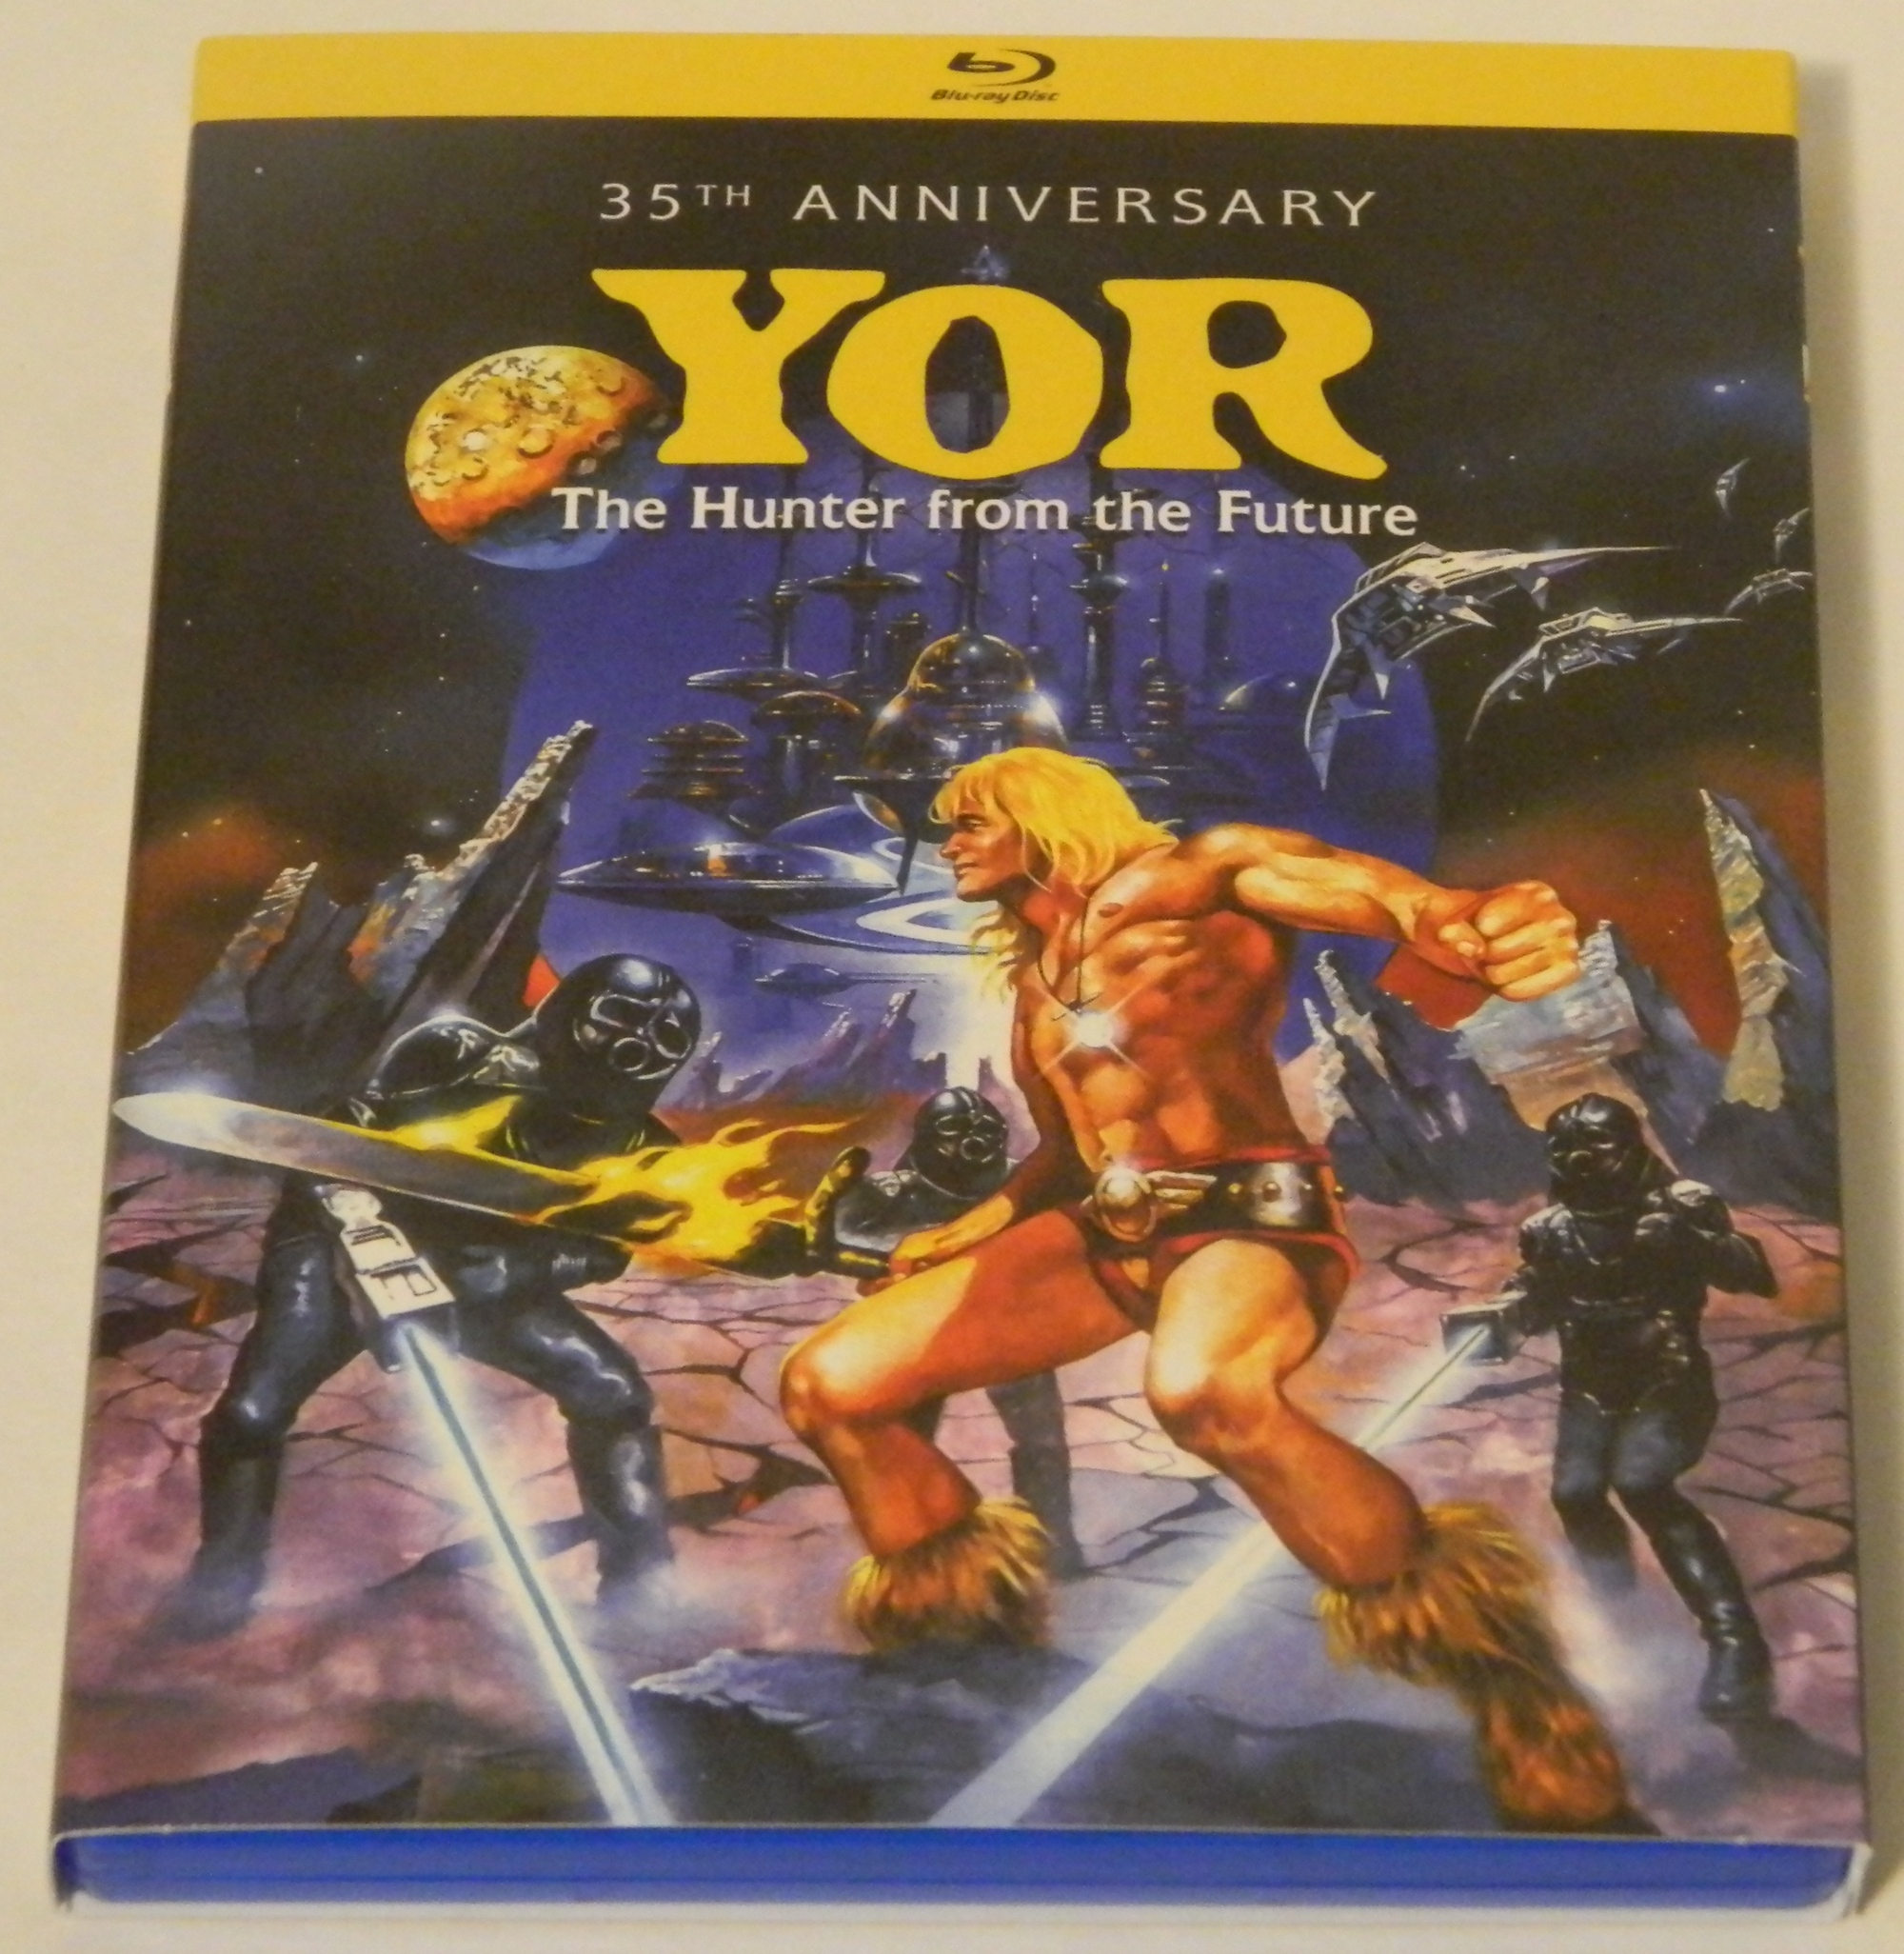 Yor, the Hunter From the Future Blu-ray